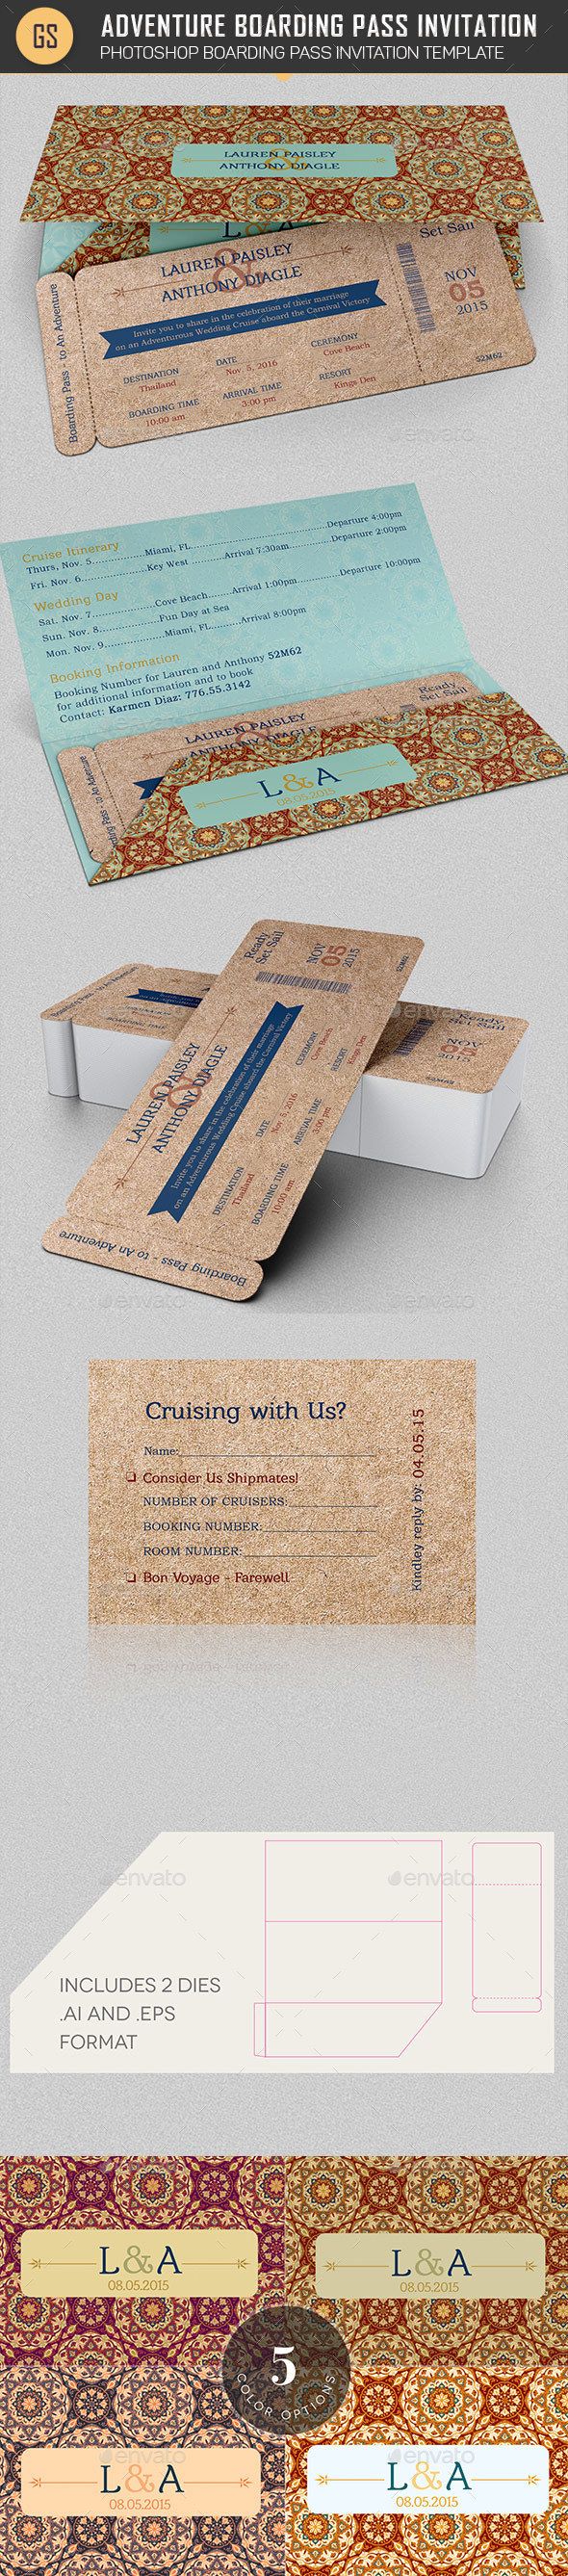 Wedding Adventure Boarding Pass Invitation Template